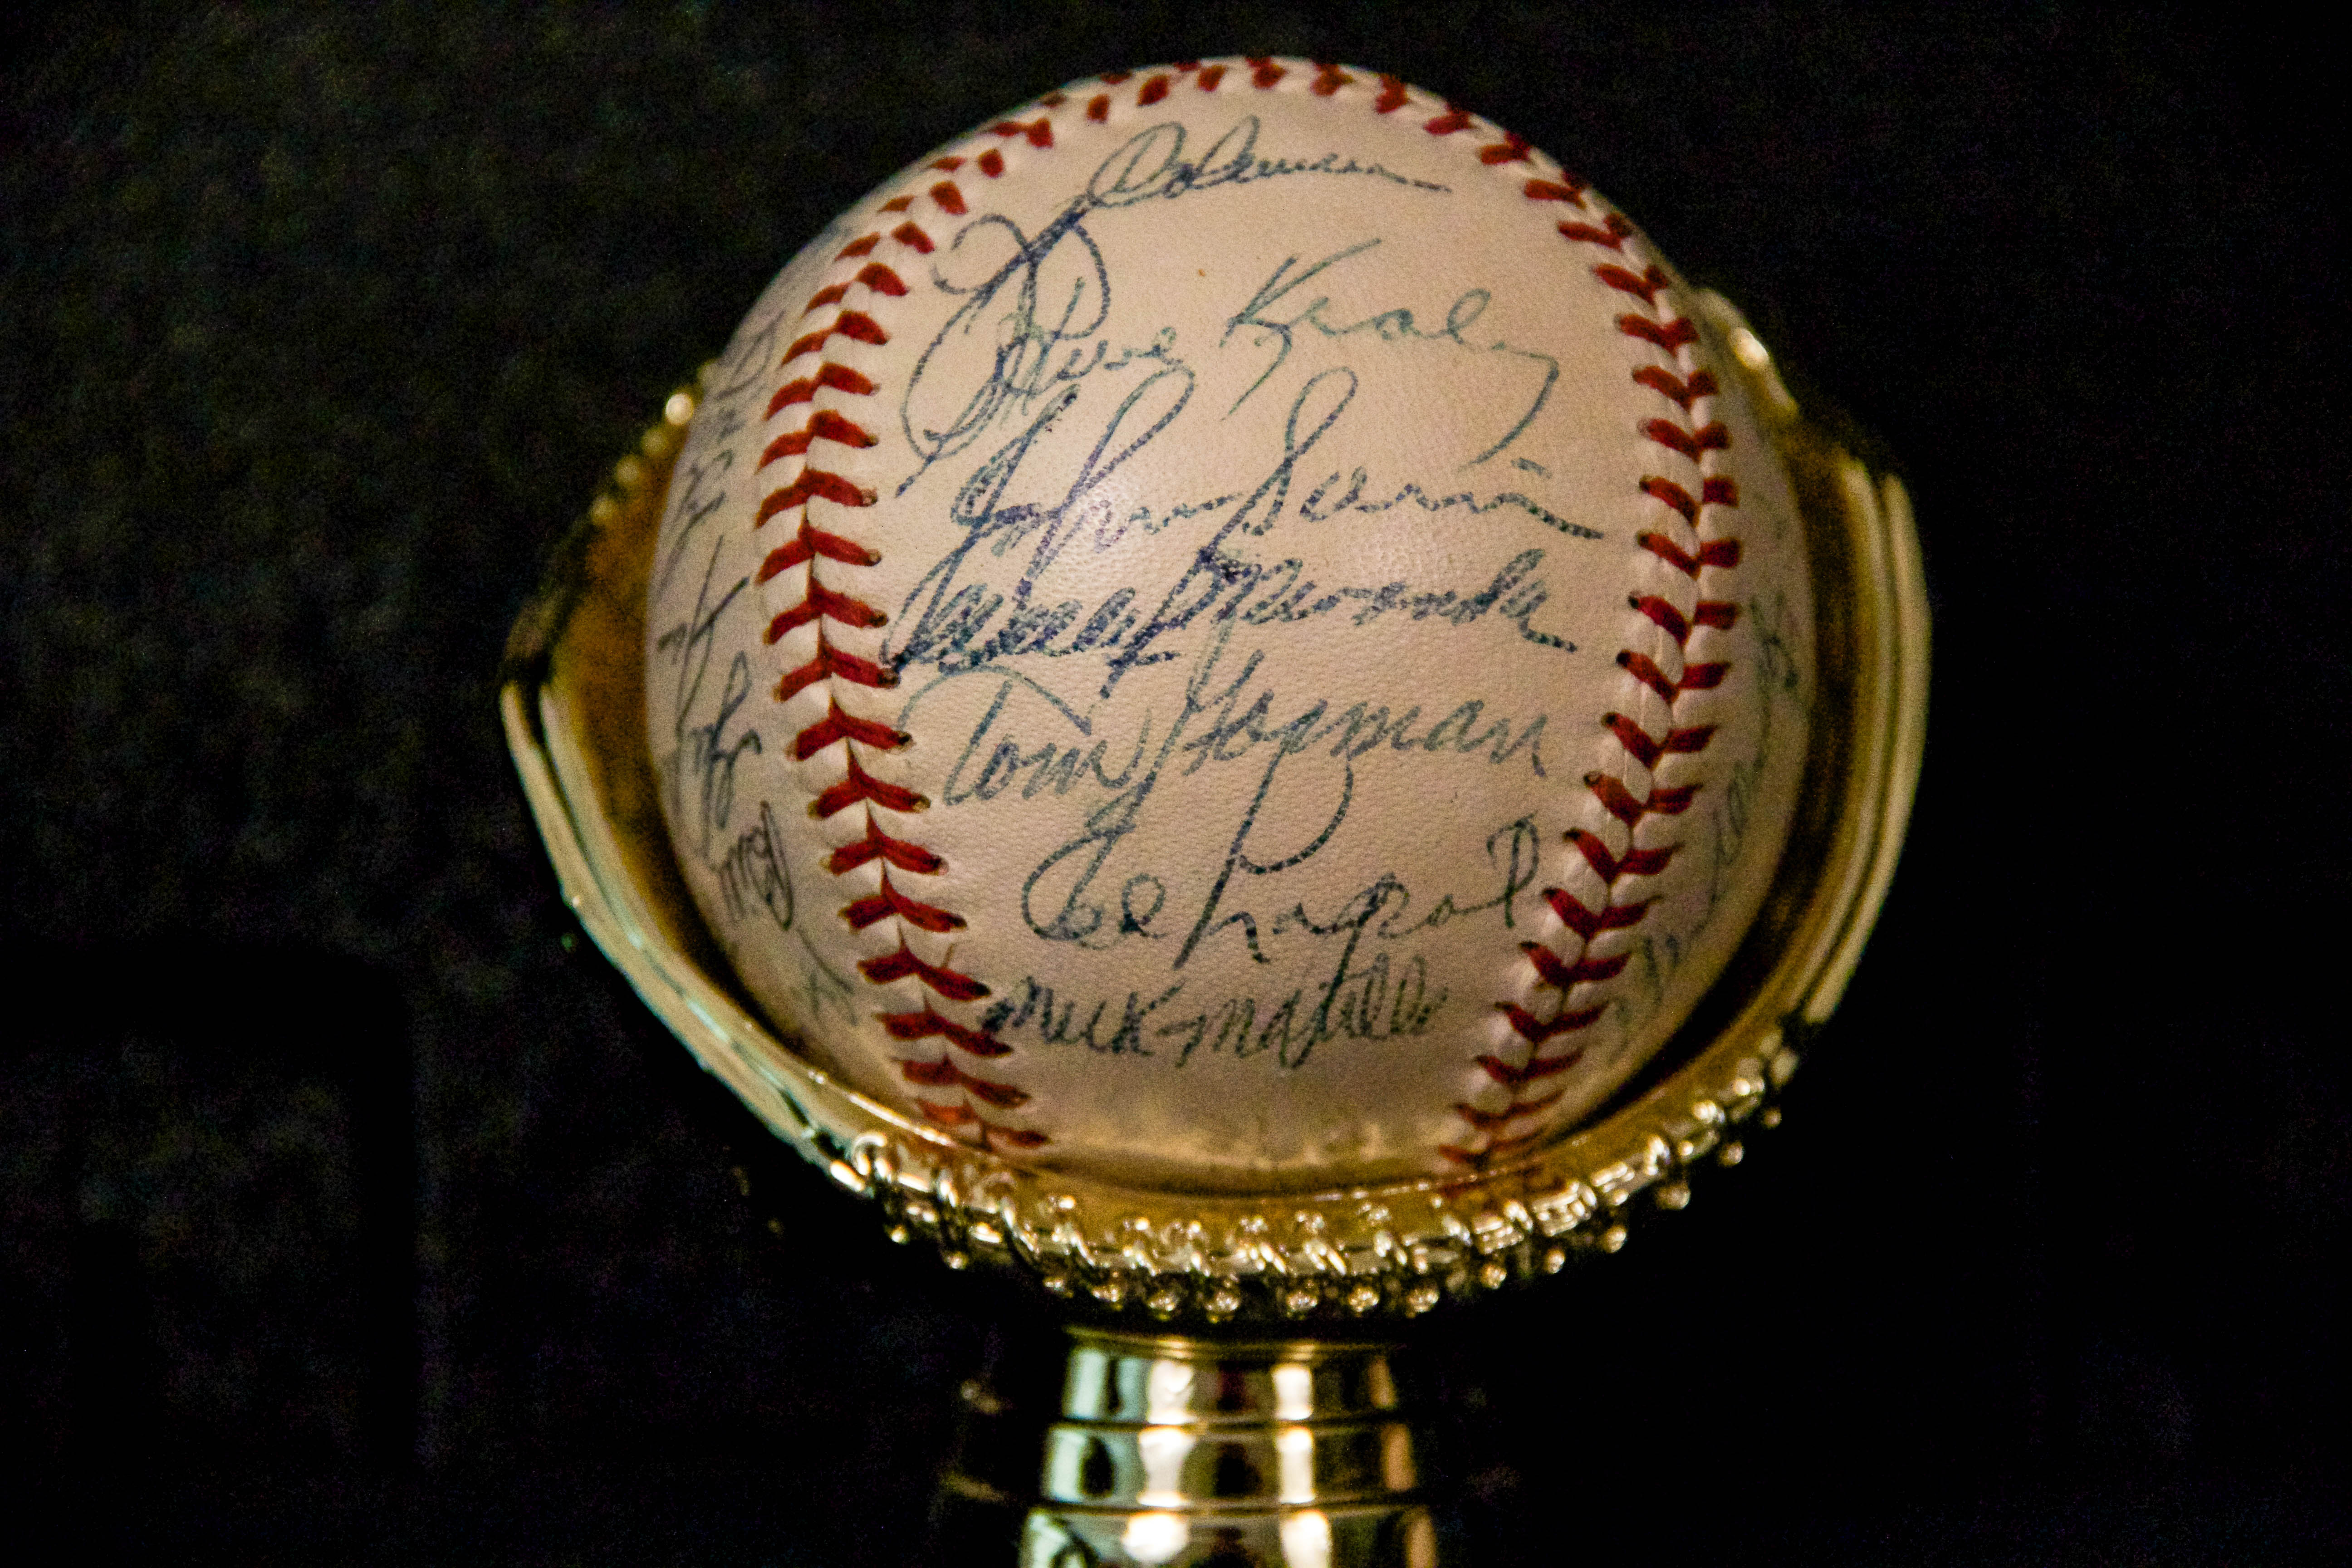 1953 World Series Champions